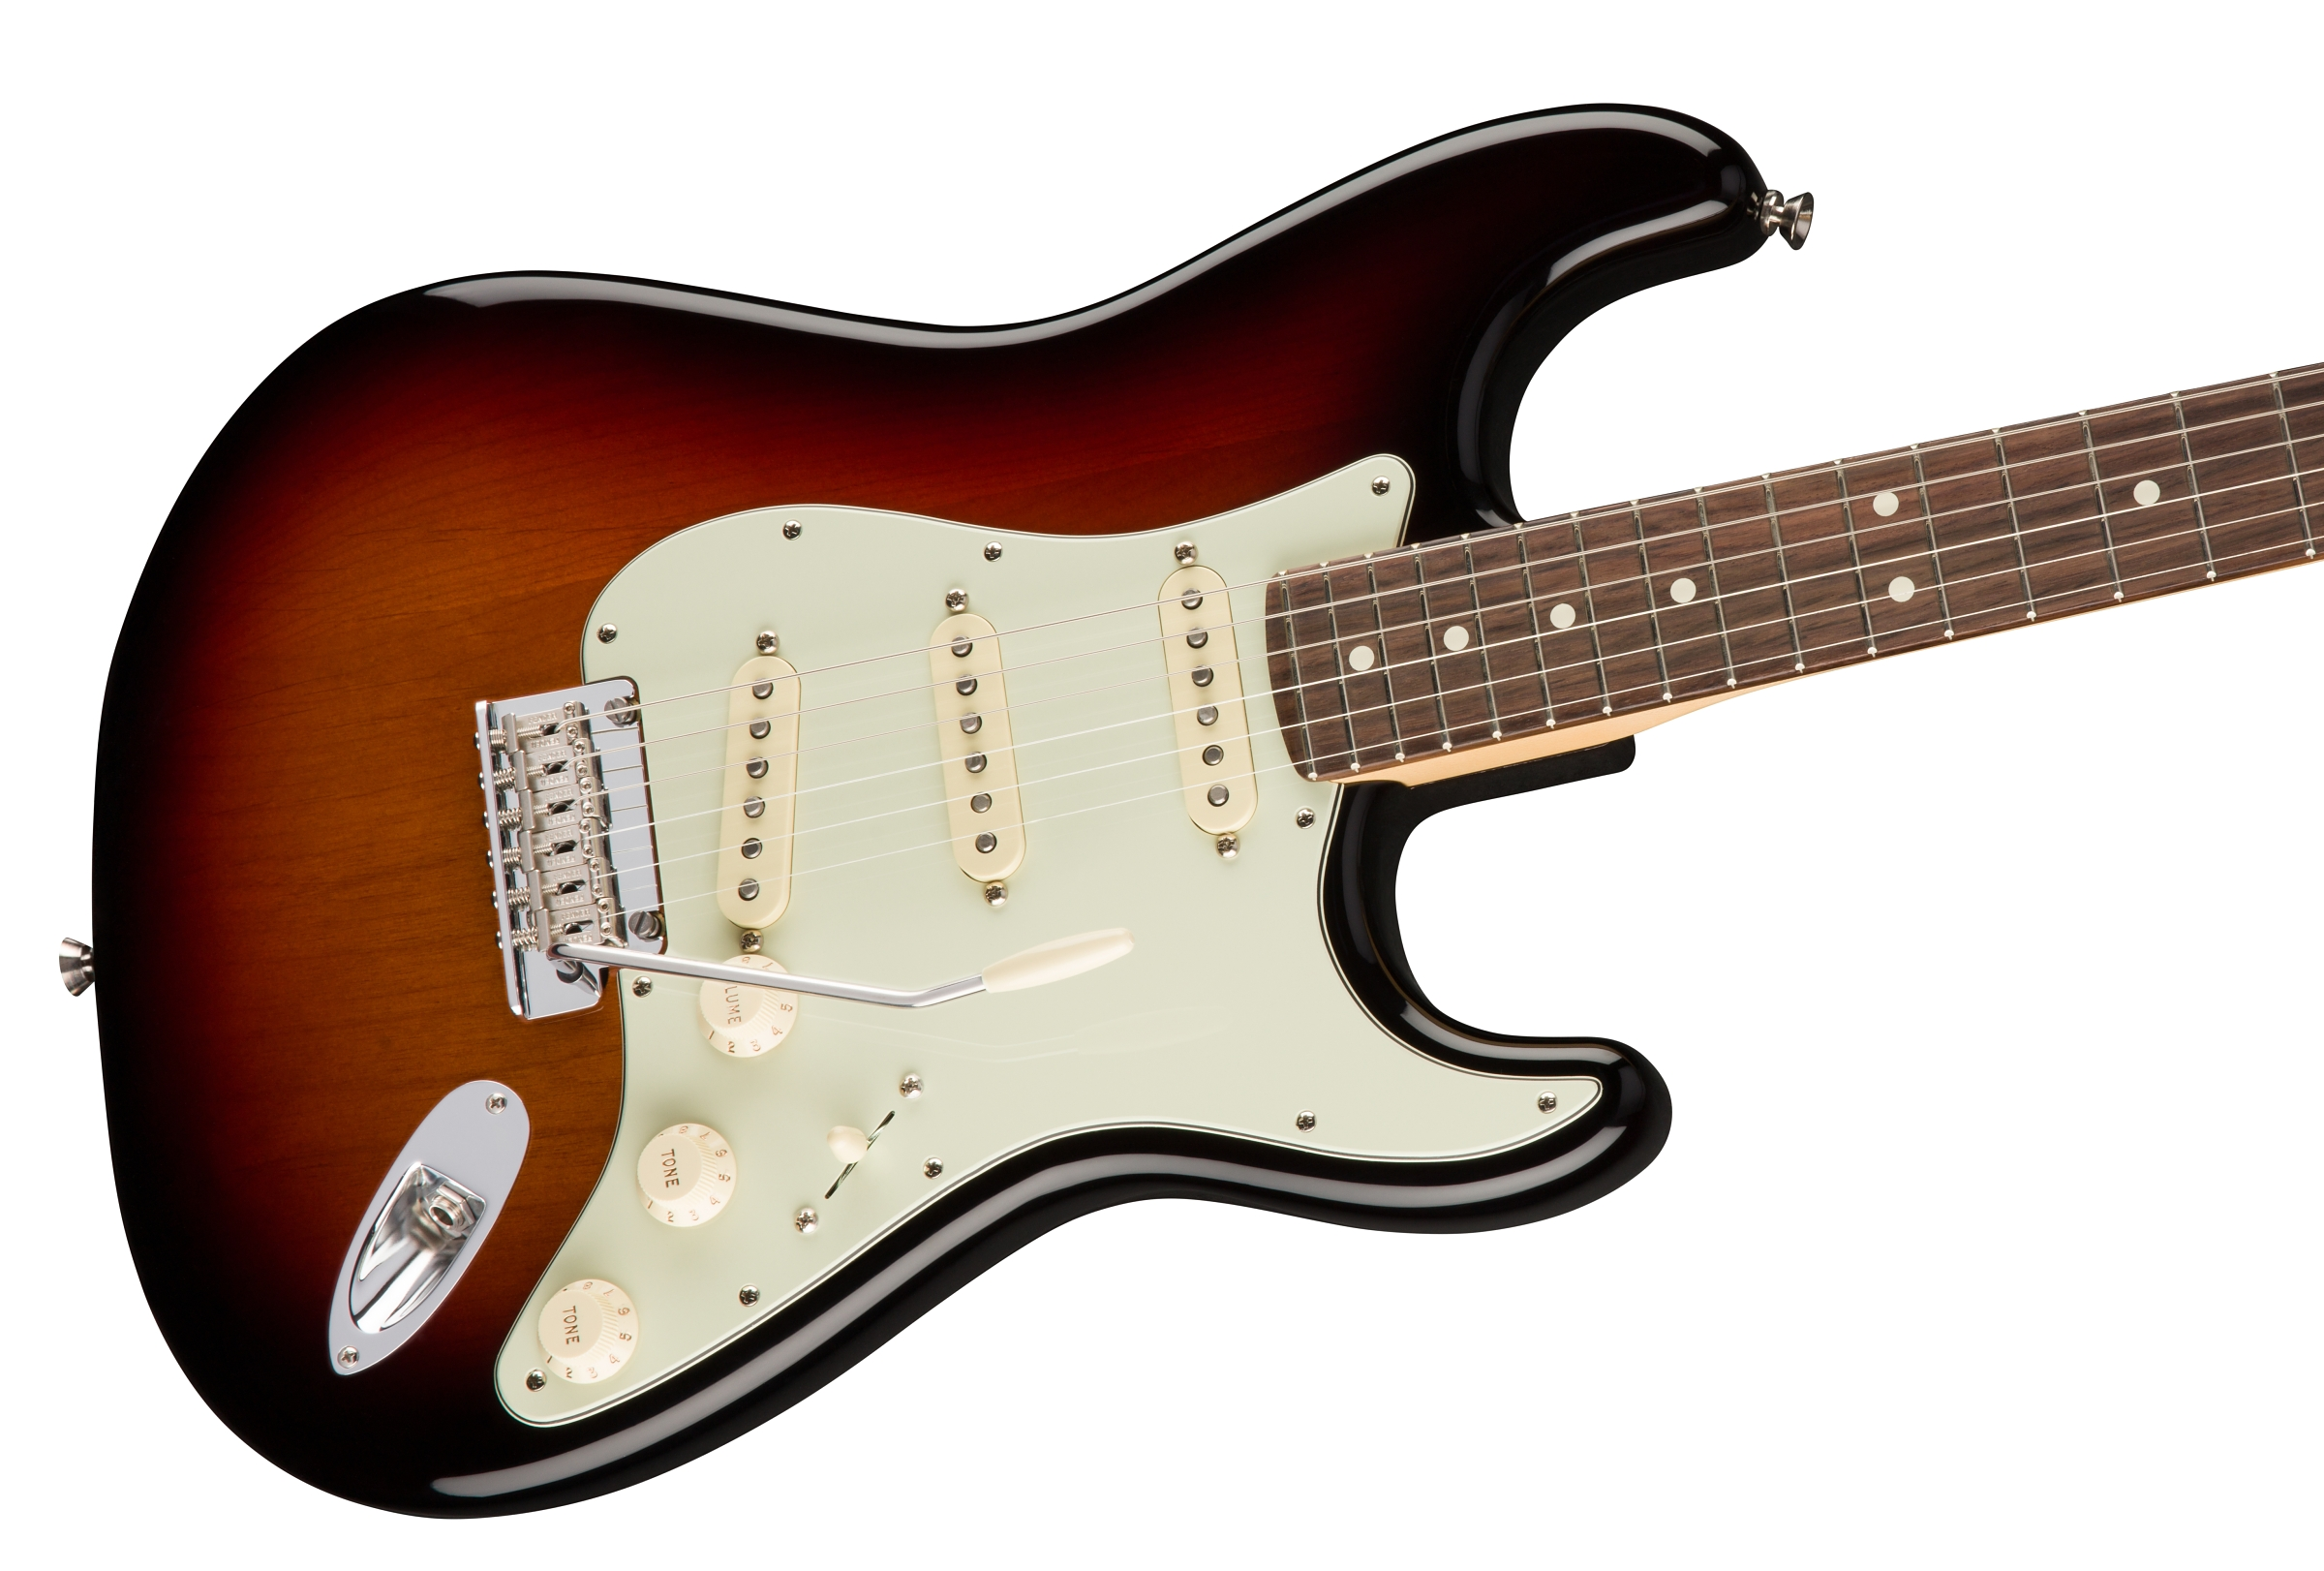 fender american pro stratocaster rosewood fingerboard 3 color sunburst. Black Bedroom Furniture Sets. Home Design Ideas